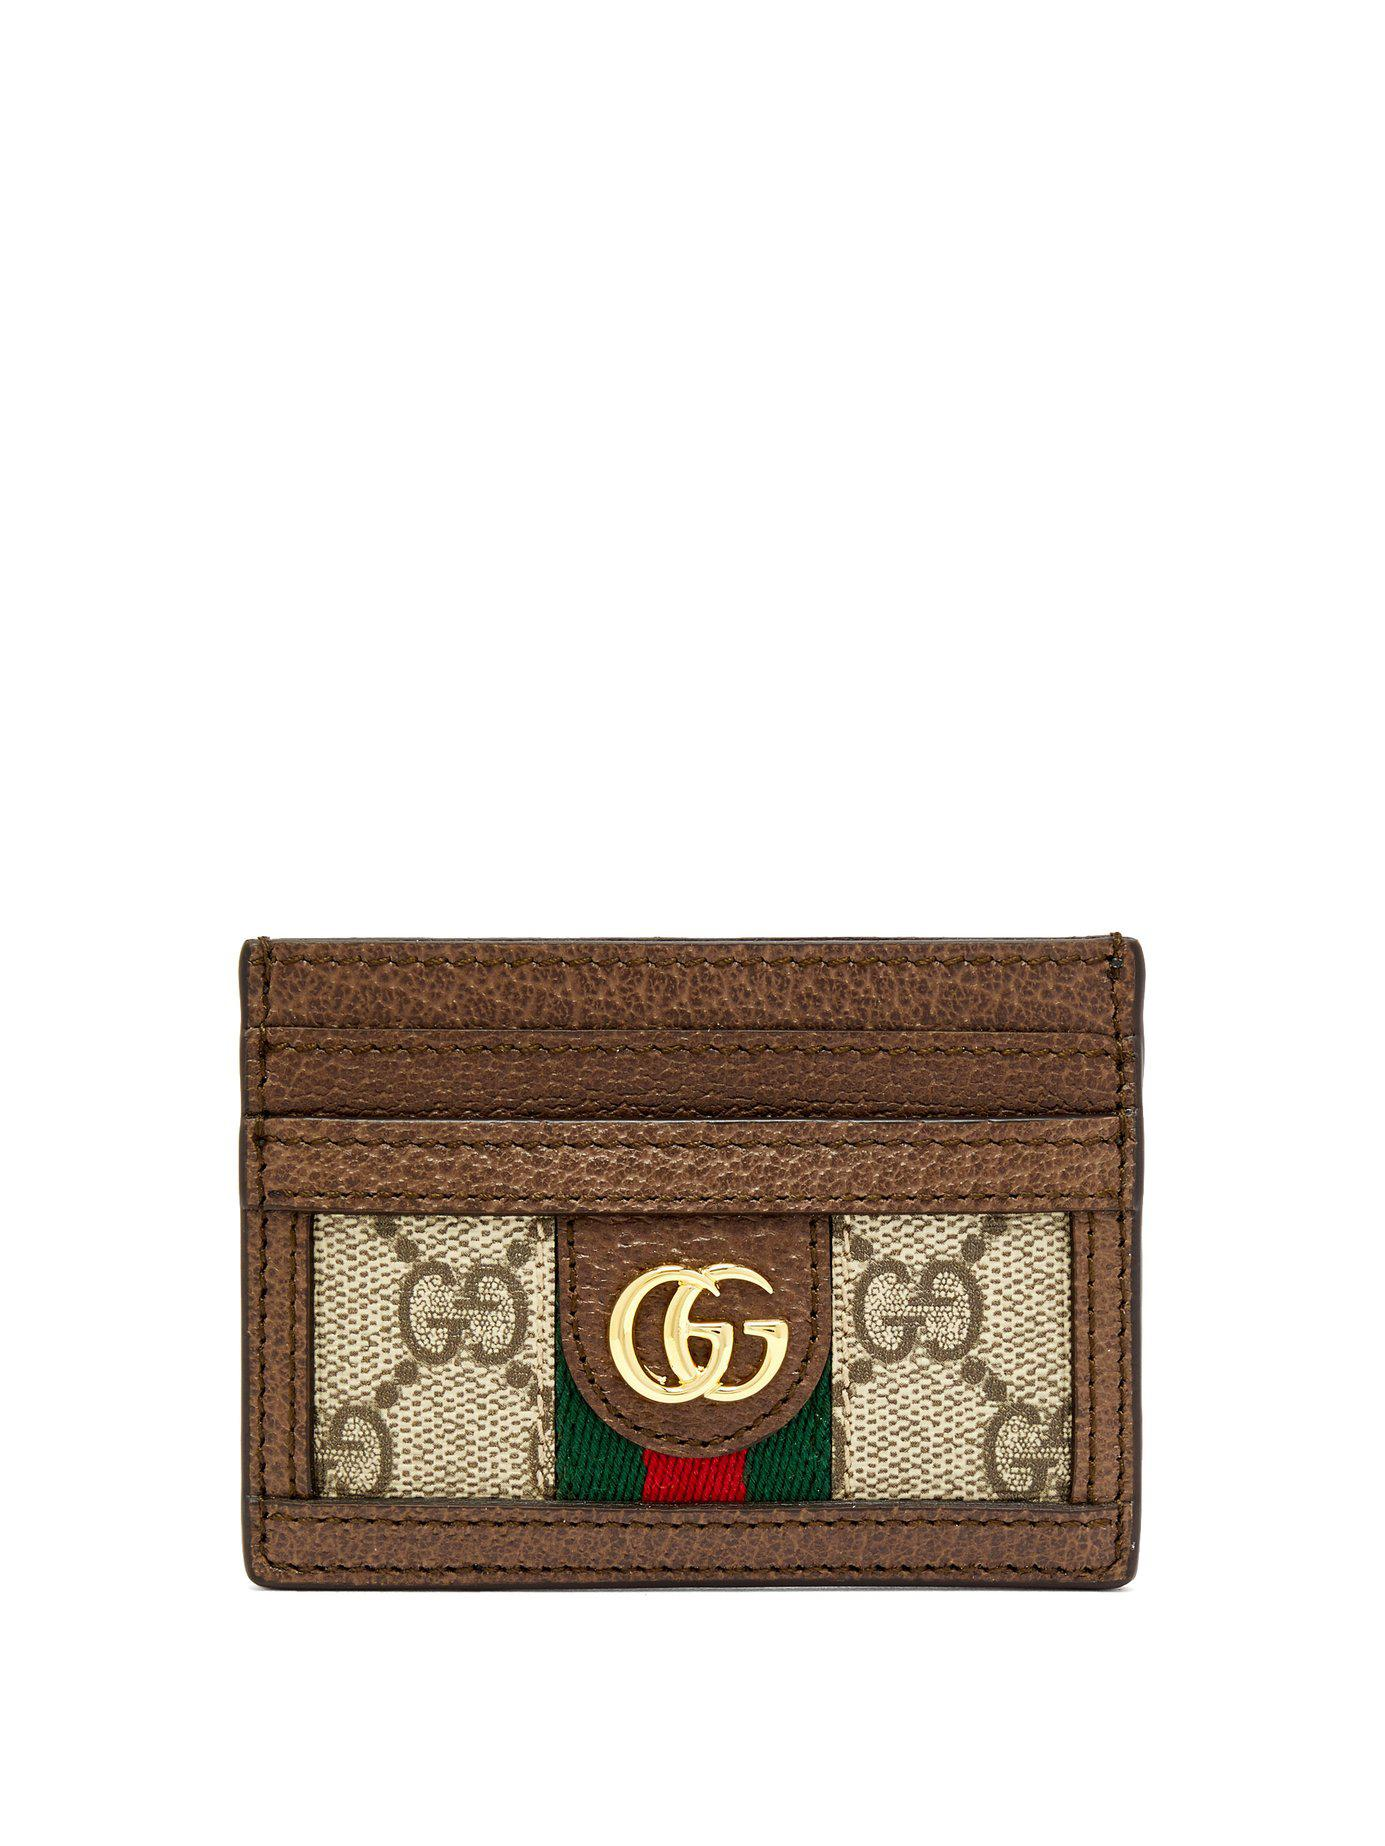 e5ccb54c2832 Lyst - Gucci Ophidia Gg Plaque Leather Cardholder - Save 29%